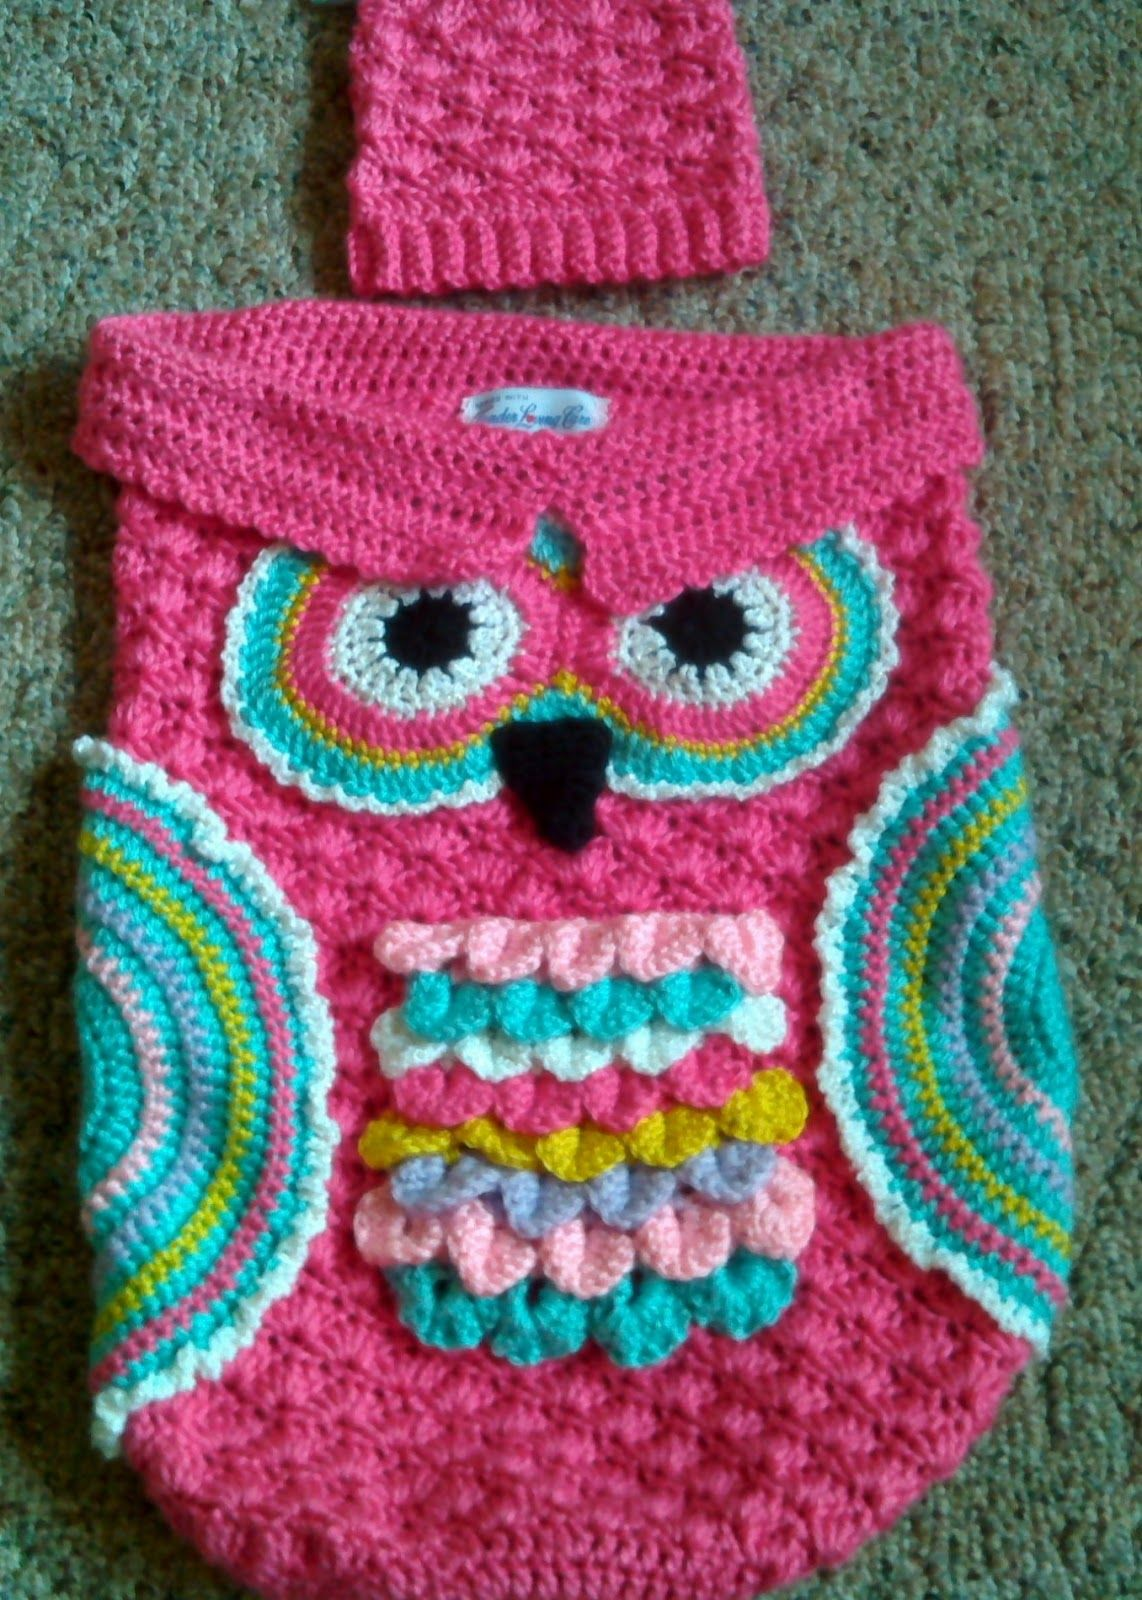 Creative crochet by becky crochet baby owl cocoon with hat in creative crochet by becky crochet baby owl cocoon with hat in newborn and 3 bankloansurffo Image collections